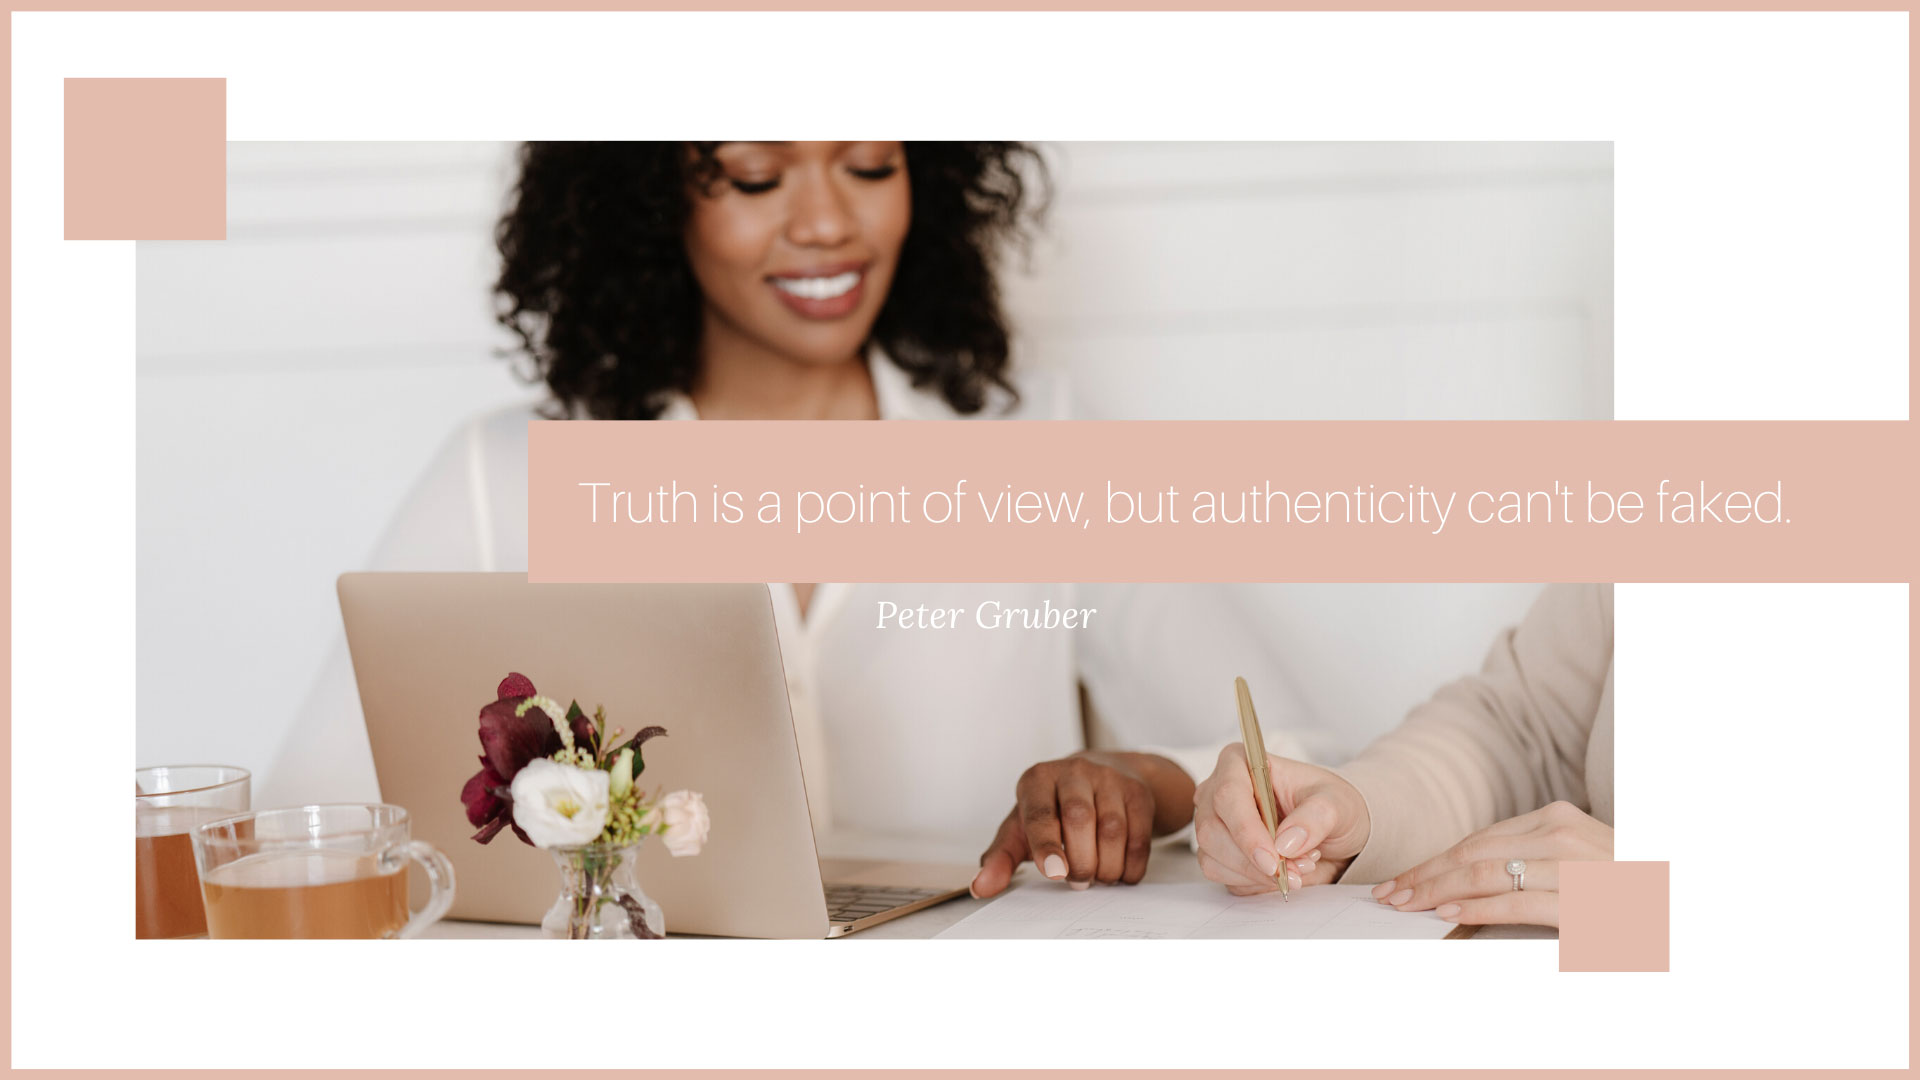 woman working at her desk signing a contract with another woman do your own business branding peter gruber quote